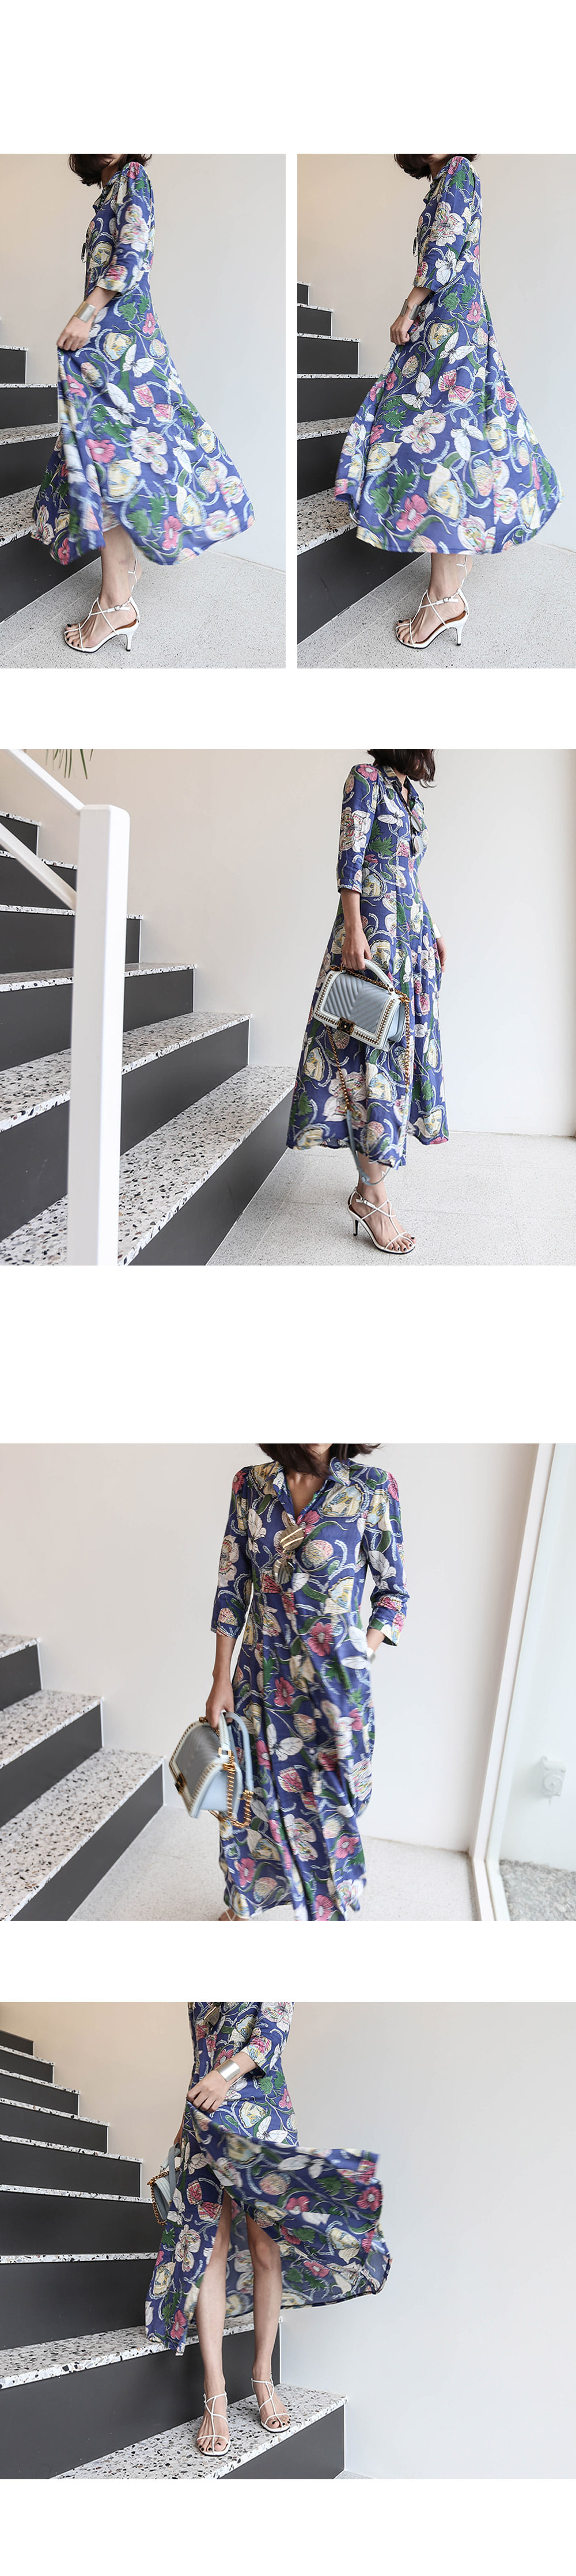 Long dress flower loofet shirt _op02551